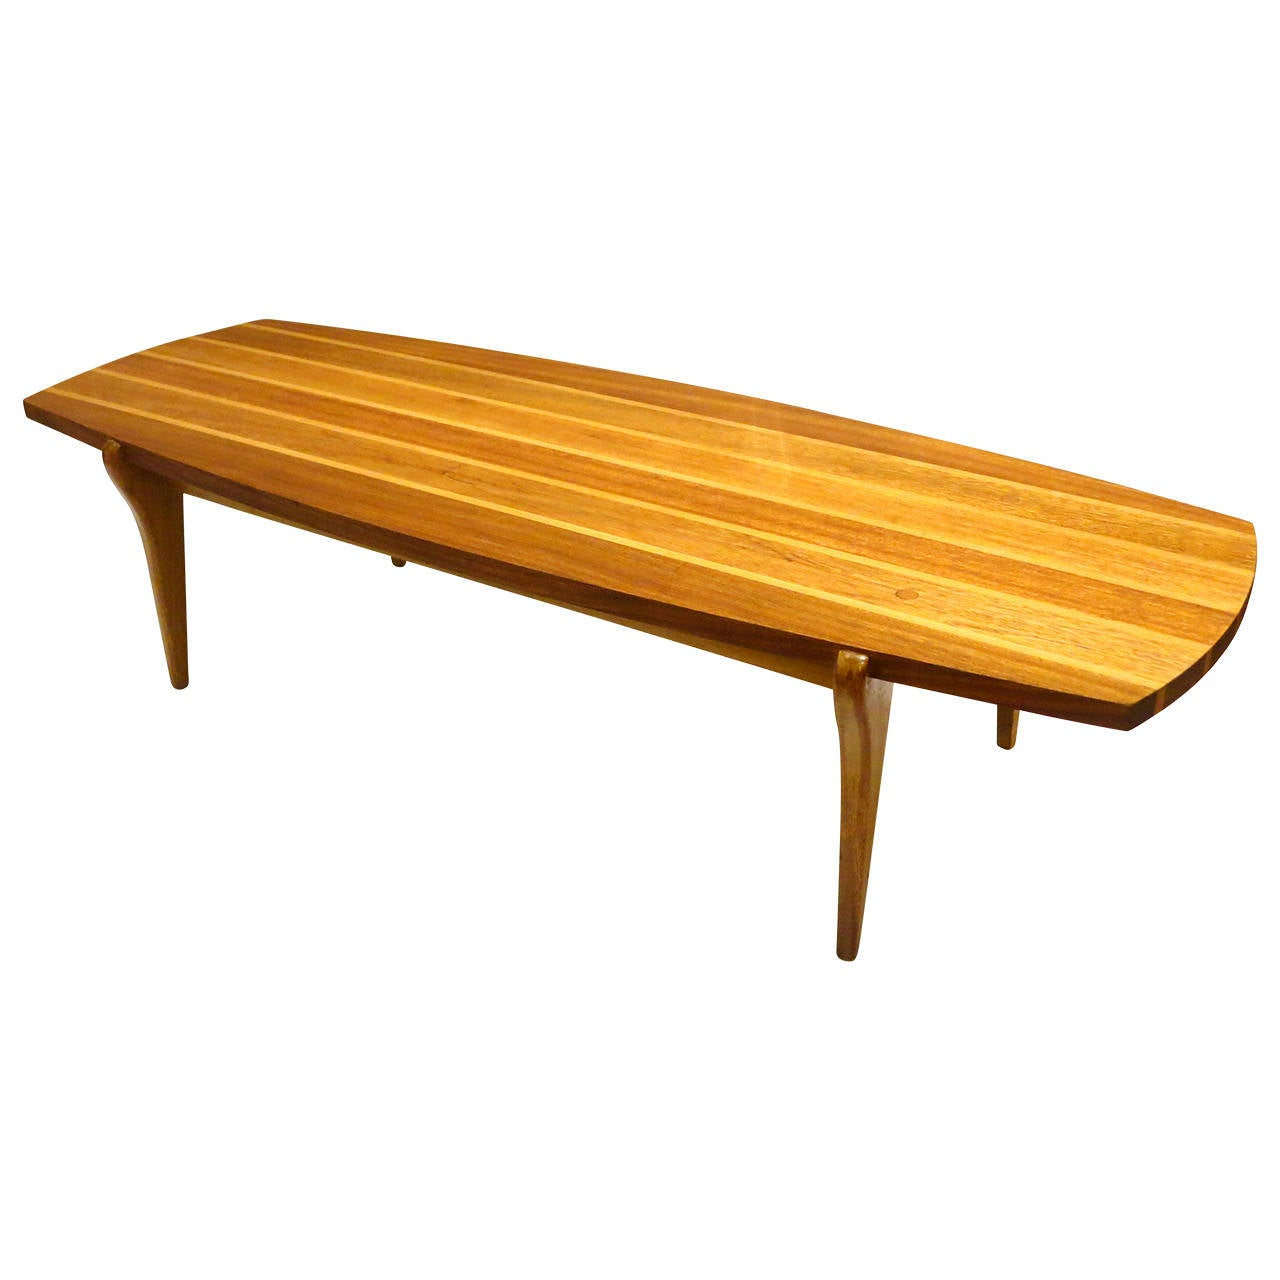 Mid Century Modern Rare Surfboard Coffee Table Brown Saltman By John Keal At 1stdibs